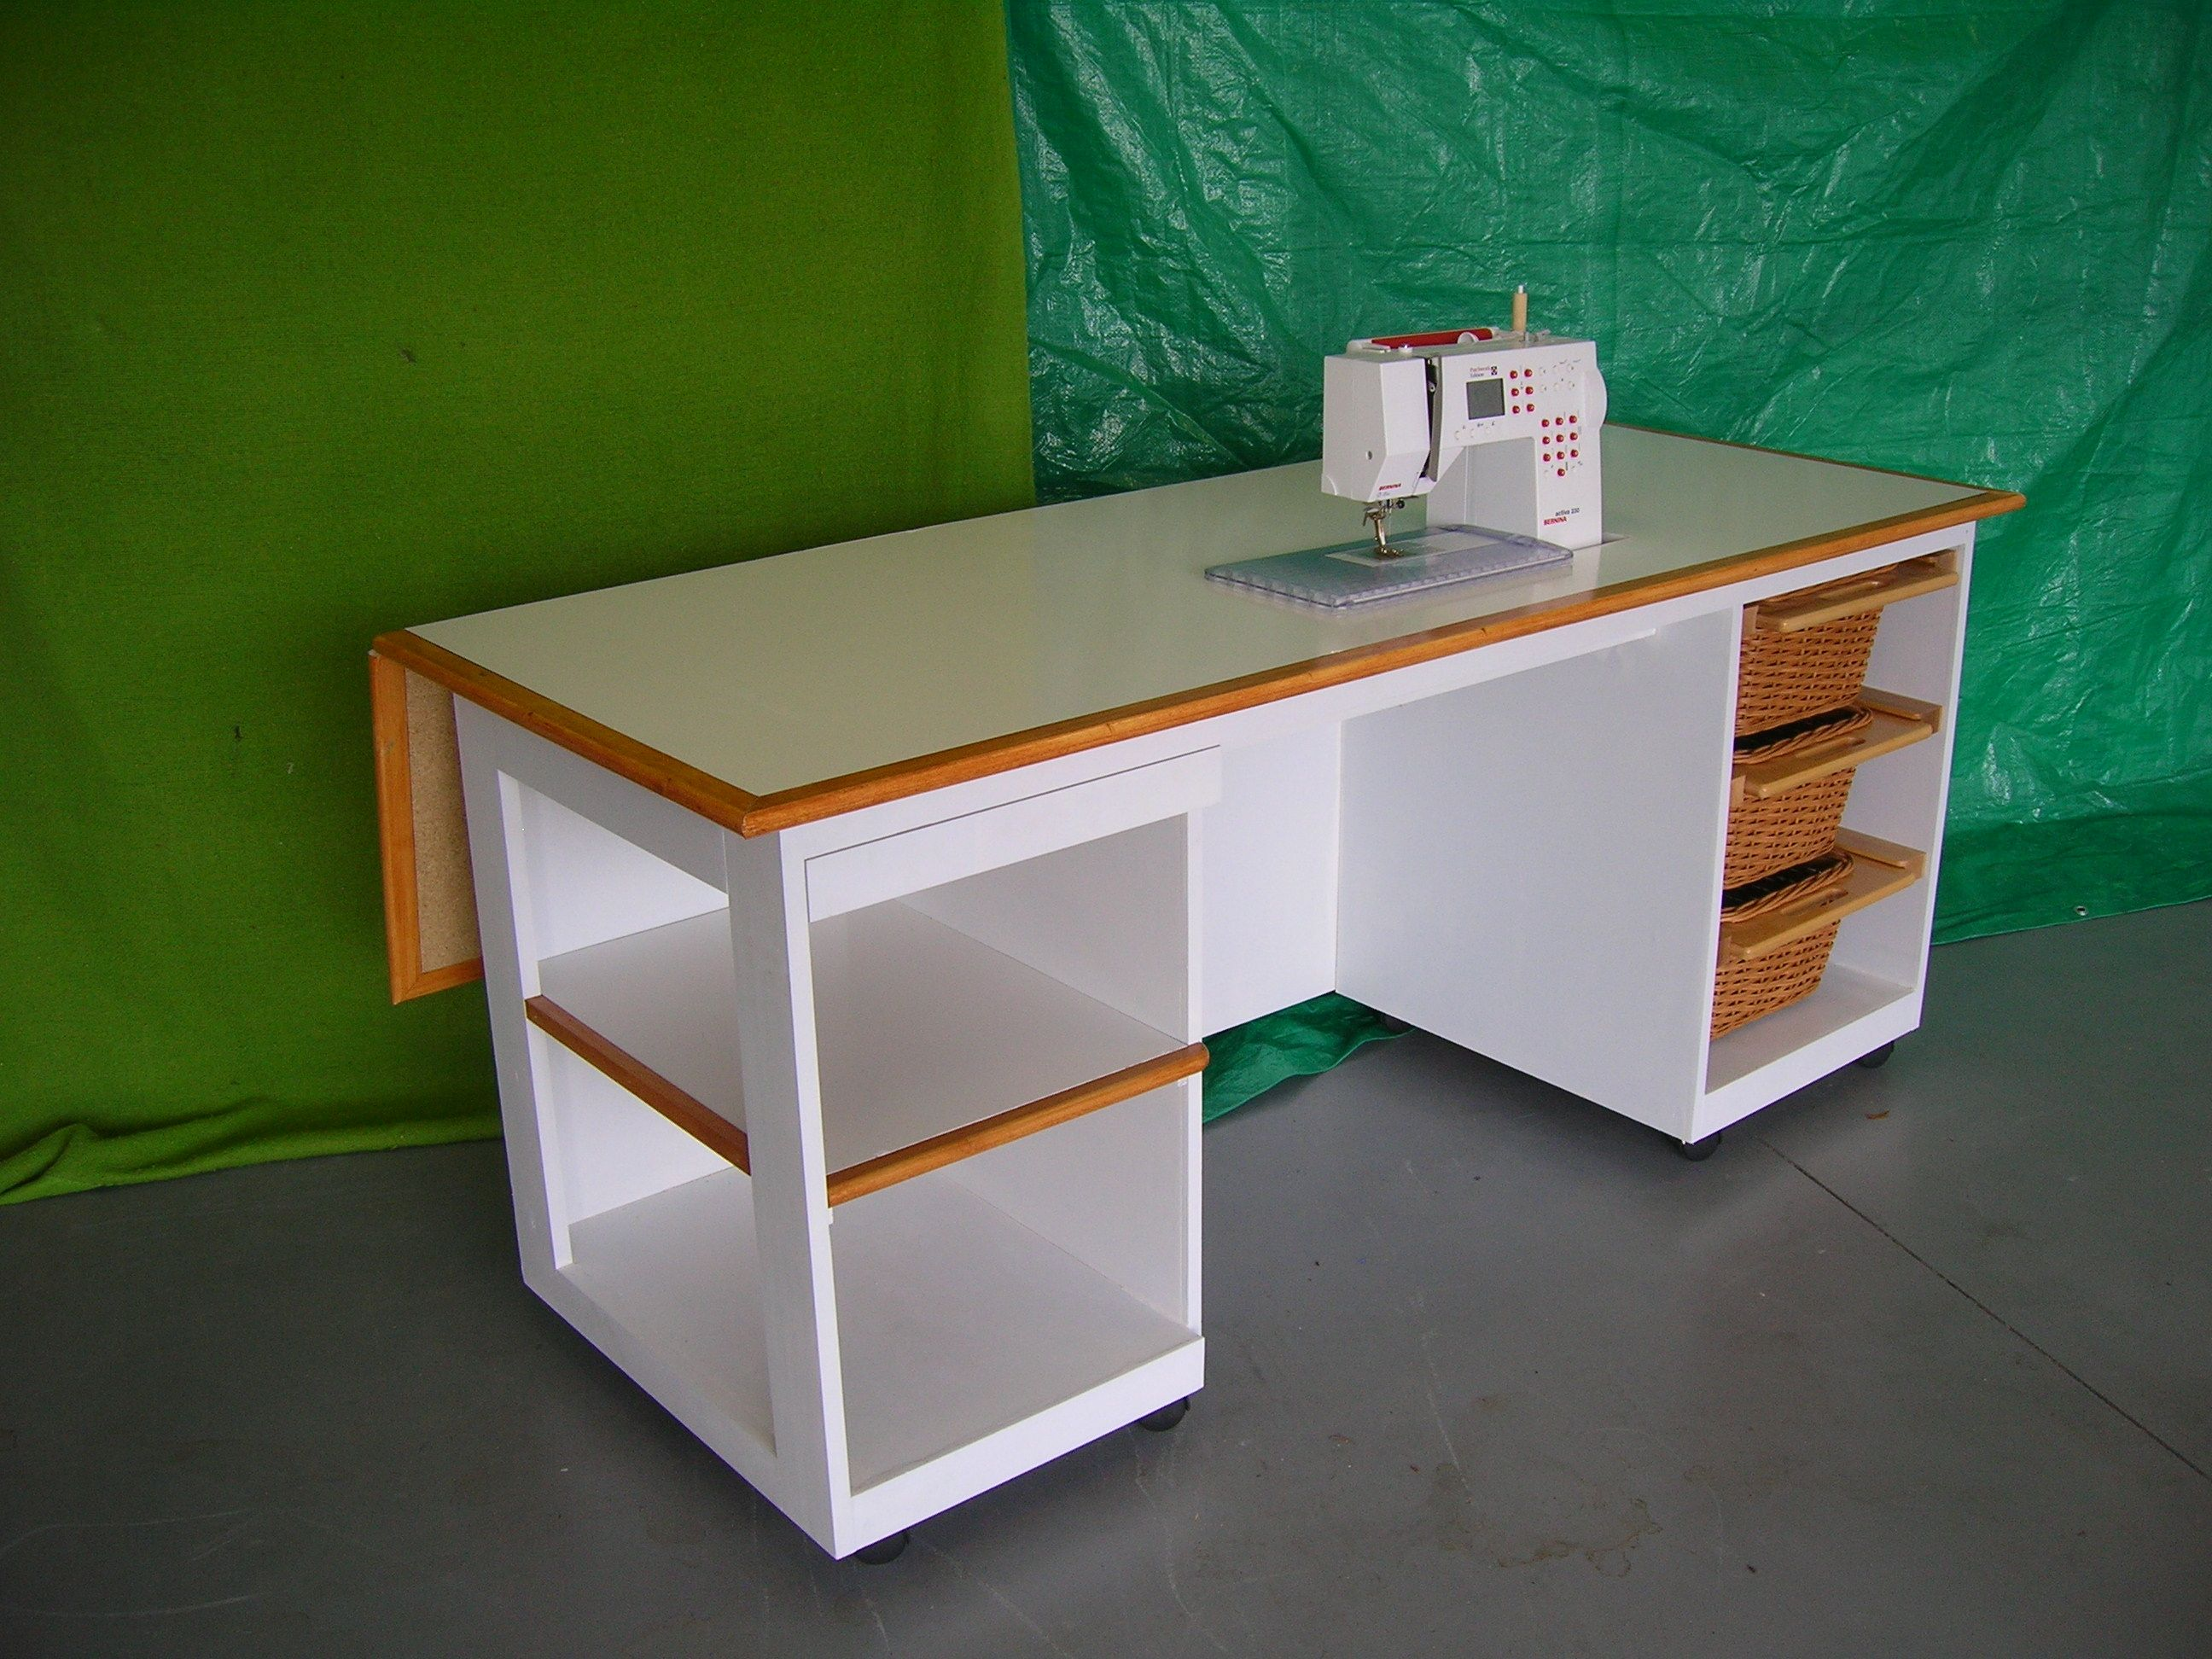 Sewing table drop down leaf on wheels perfect crafts pinterest sewing table drop down leaf this website leads nowhere but awesome table like the ability to have so much extra room at the back of the machine watchthetrailerfo